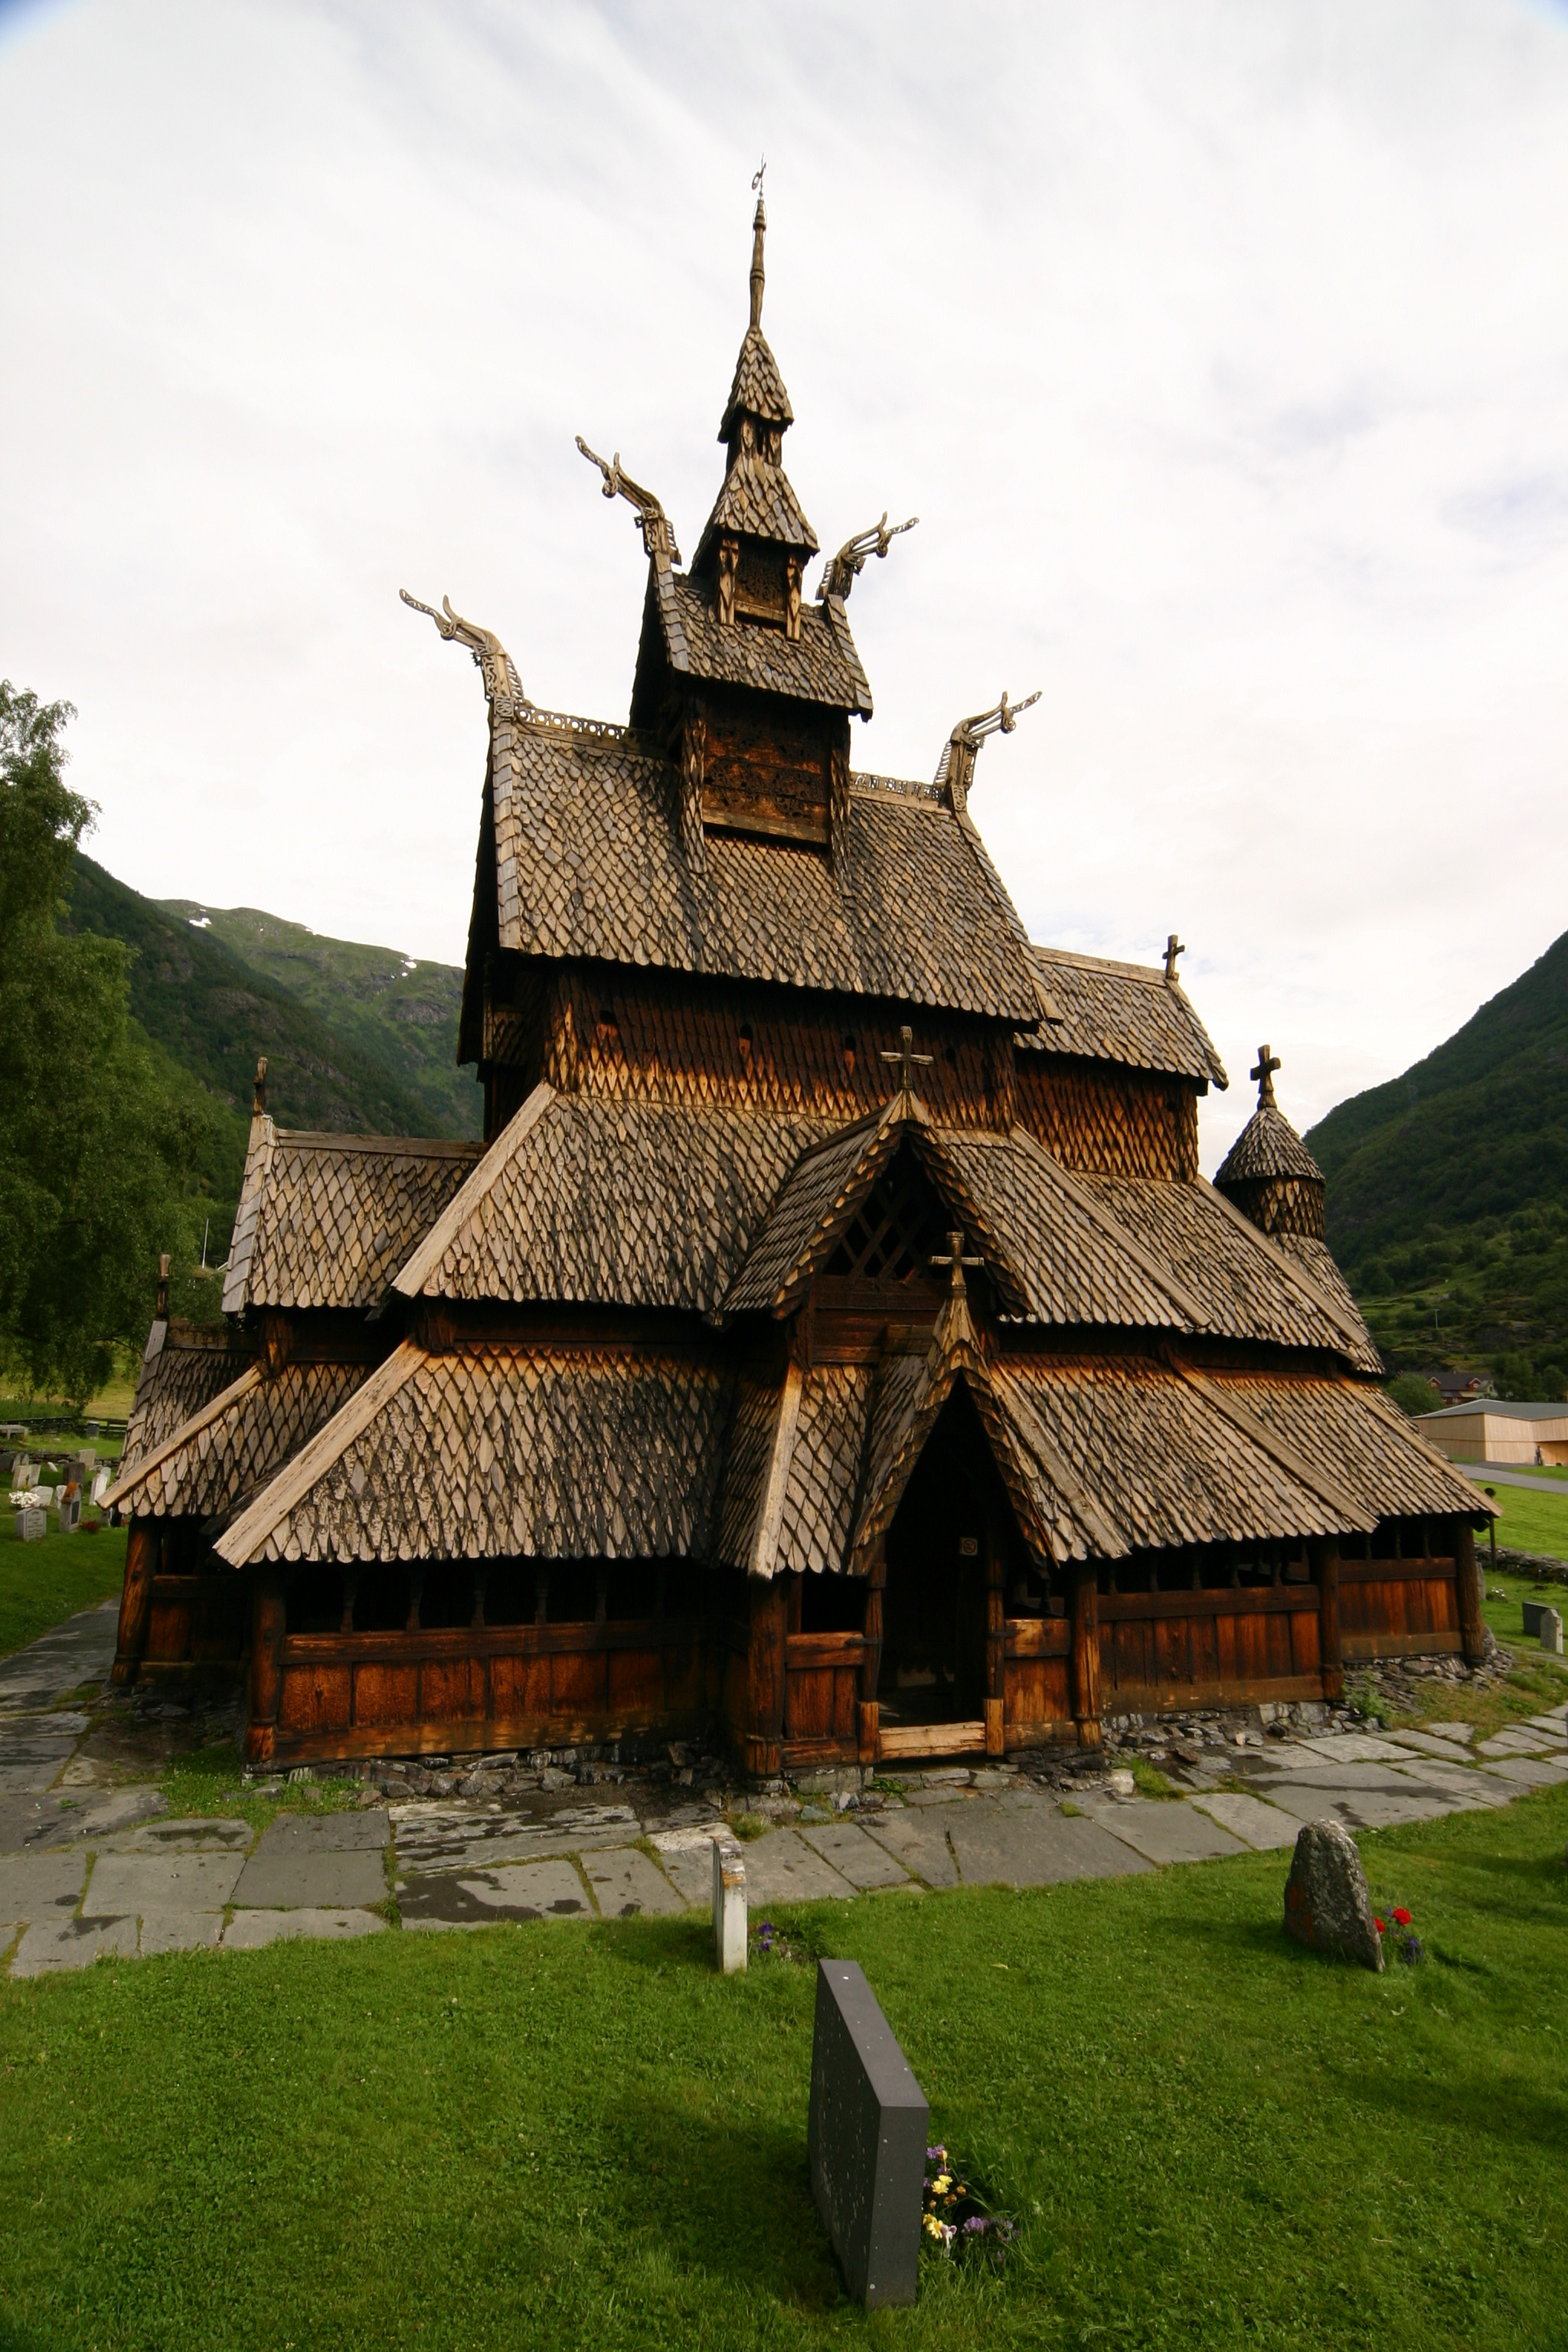 borgund-stave-church-norway-3